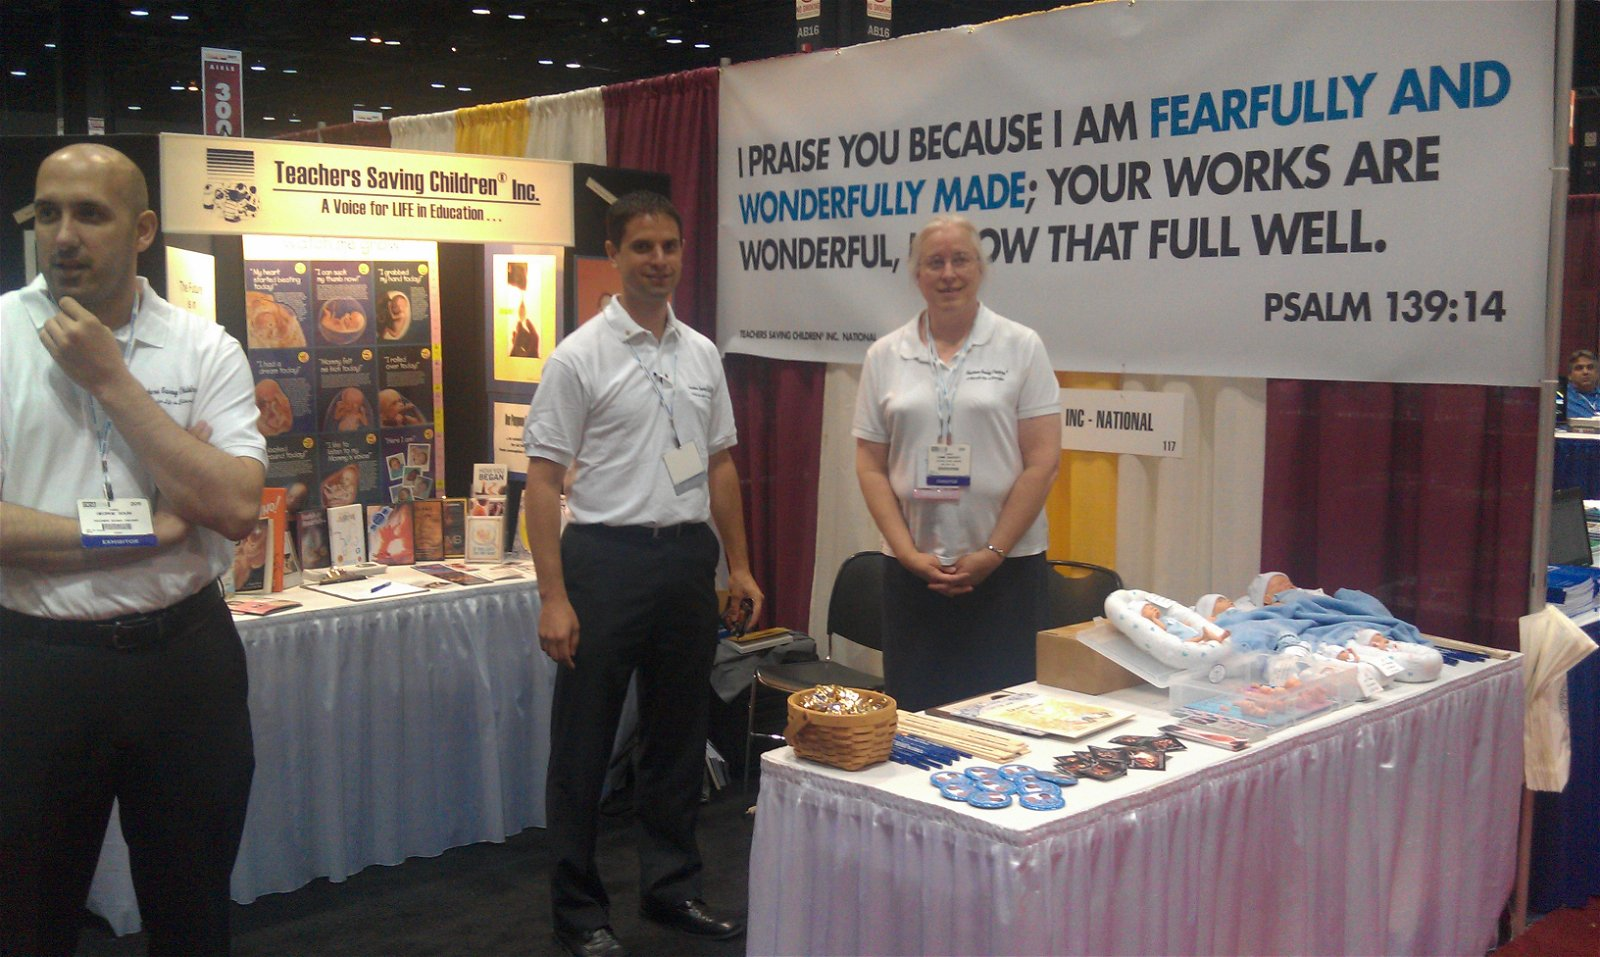 Teachers Saving Children® Booth at NEA Conference